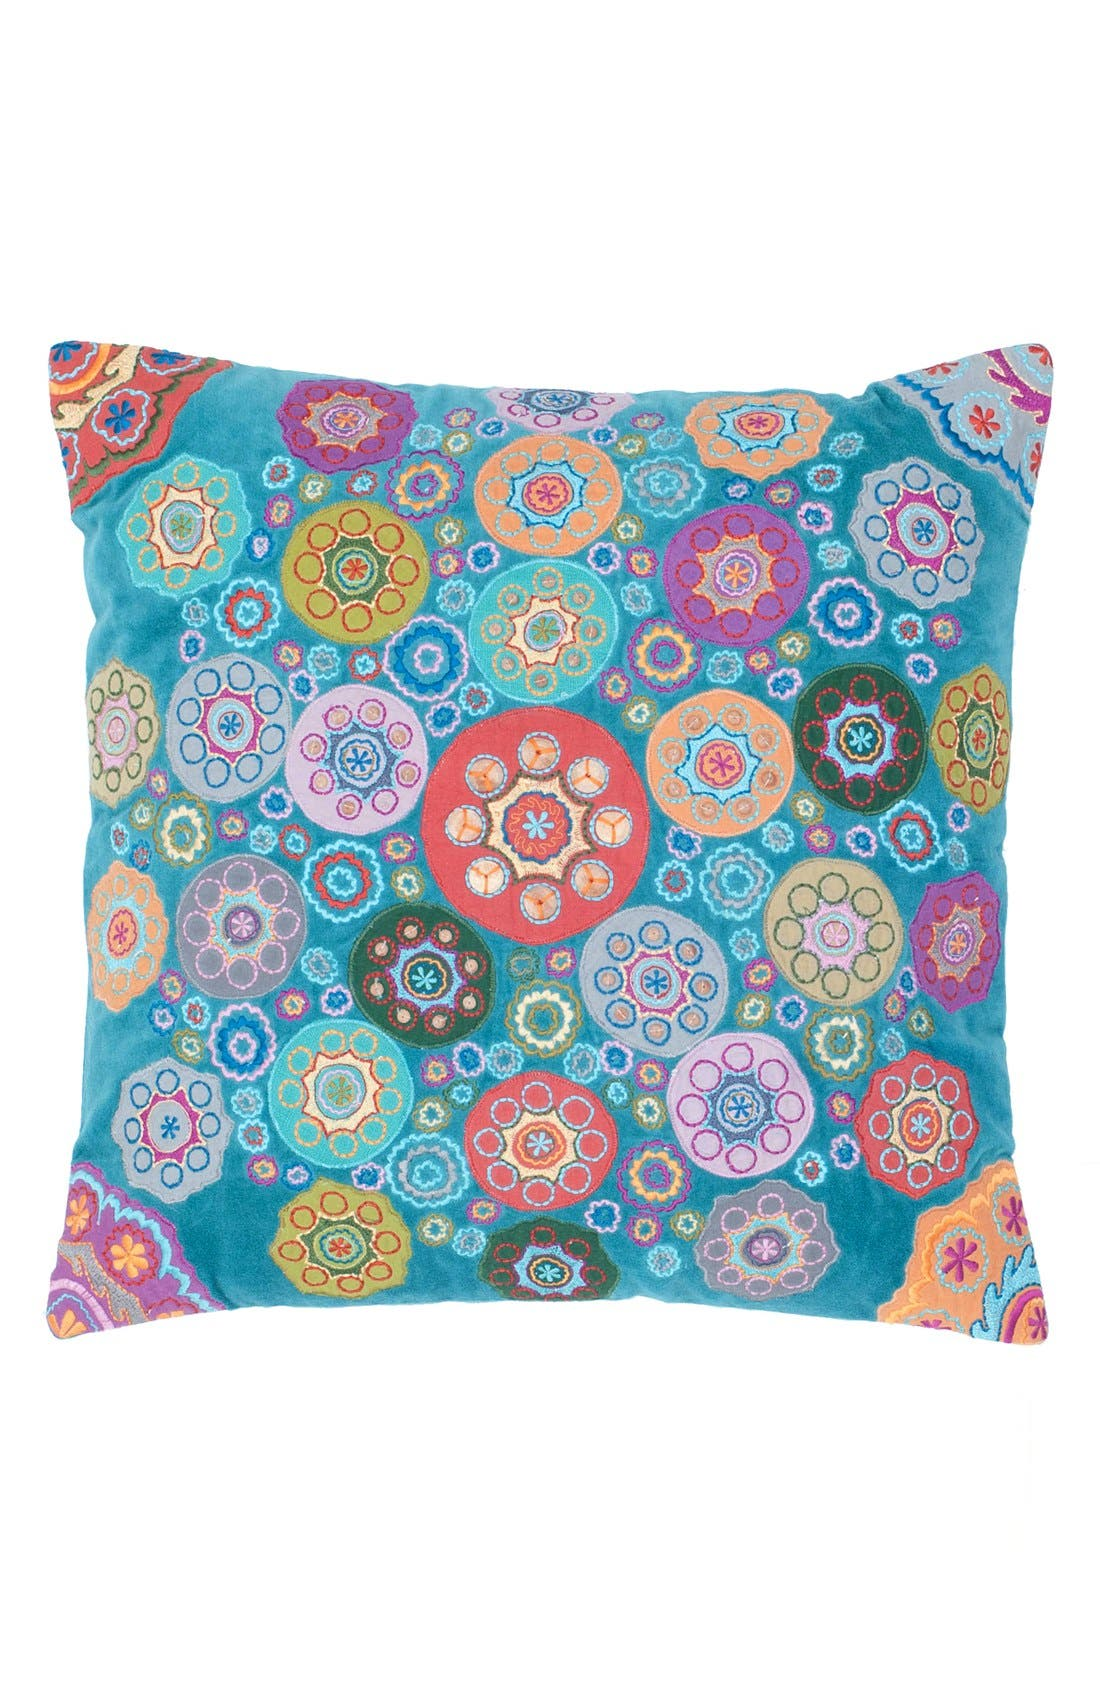 'Geo Floral' Accent Pillow,                             Main thumbnail 1, color,                             440